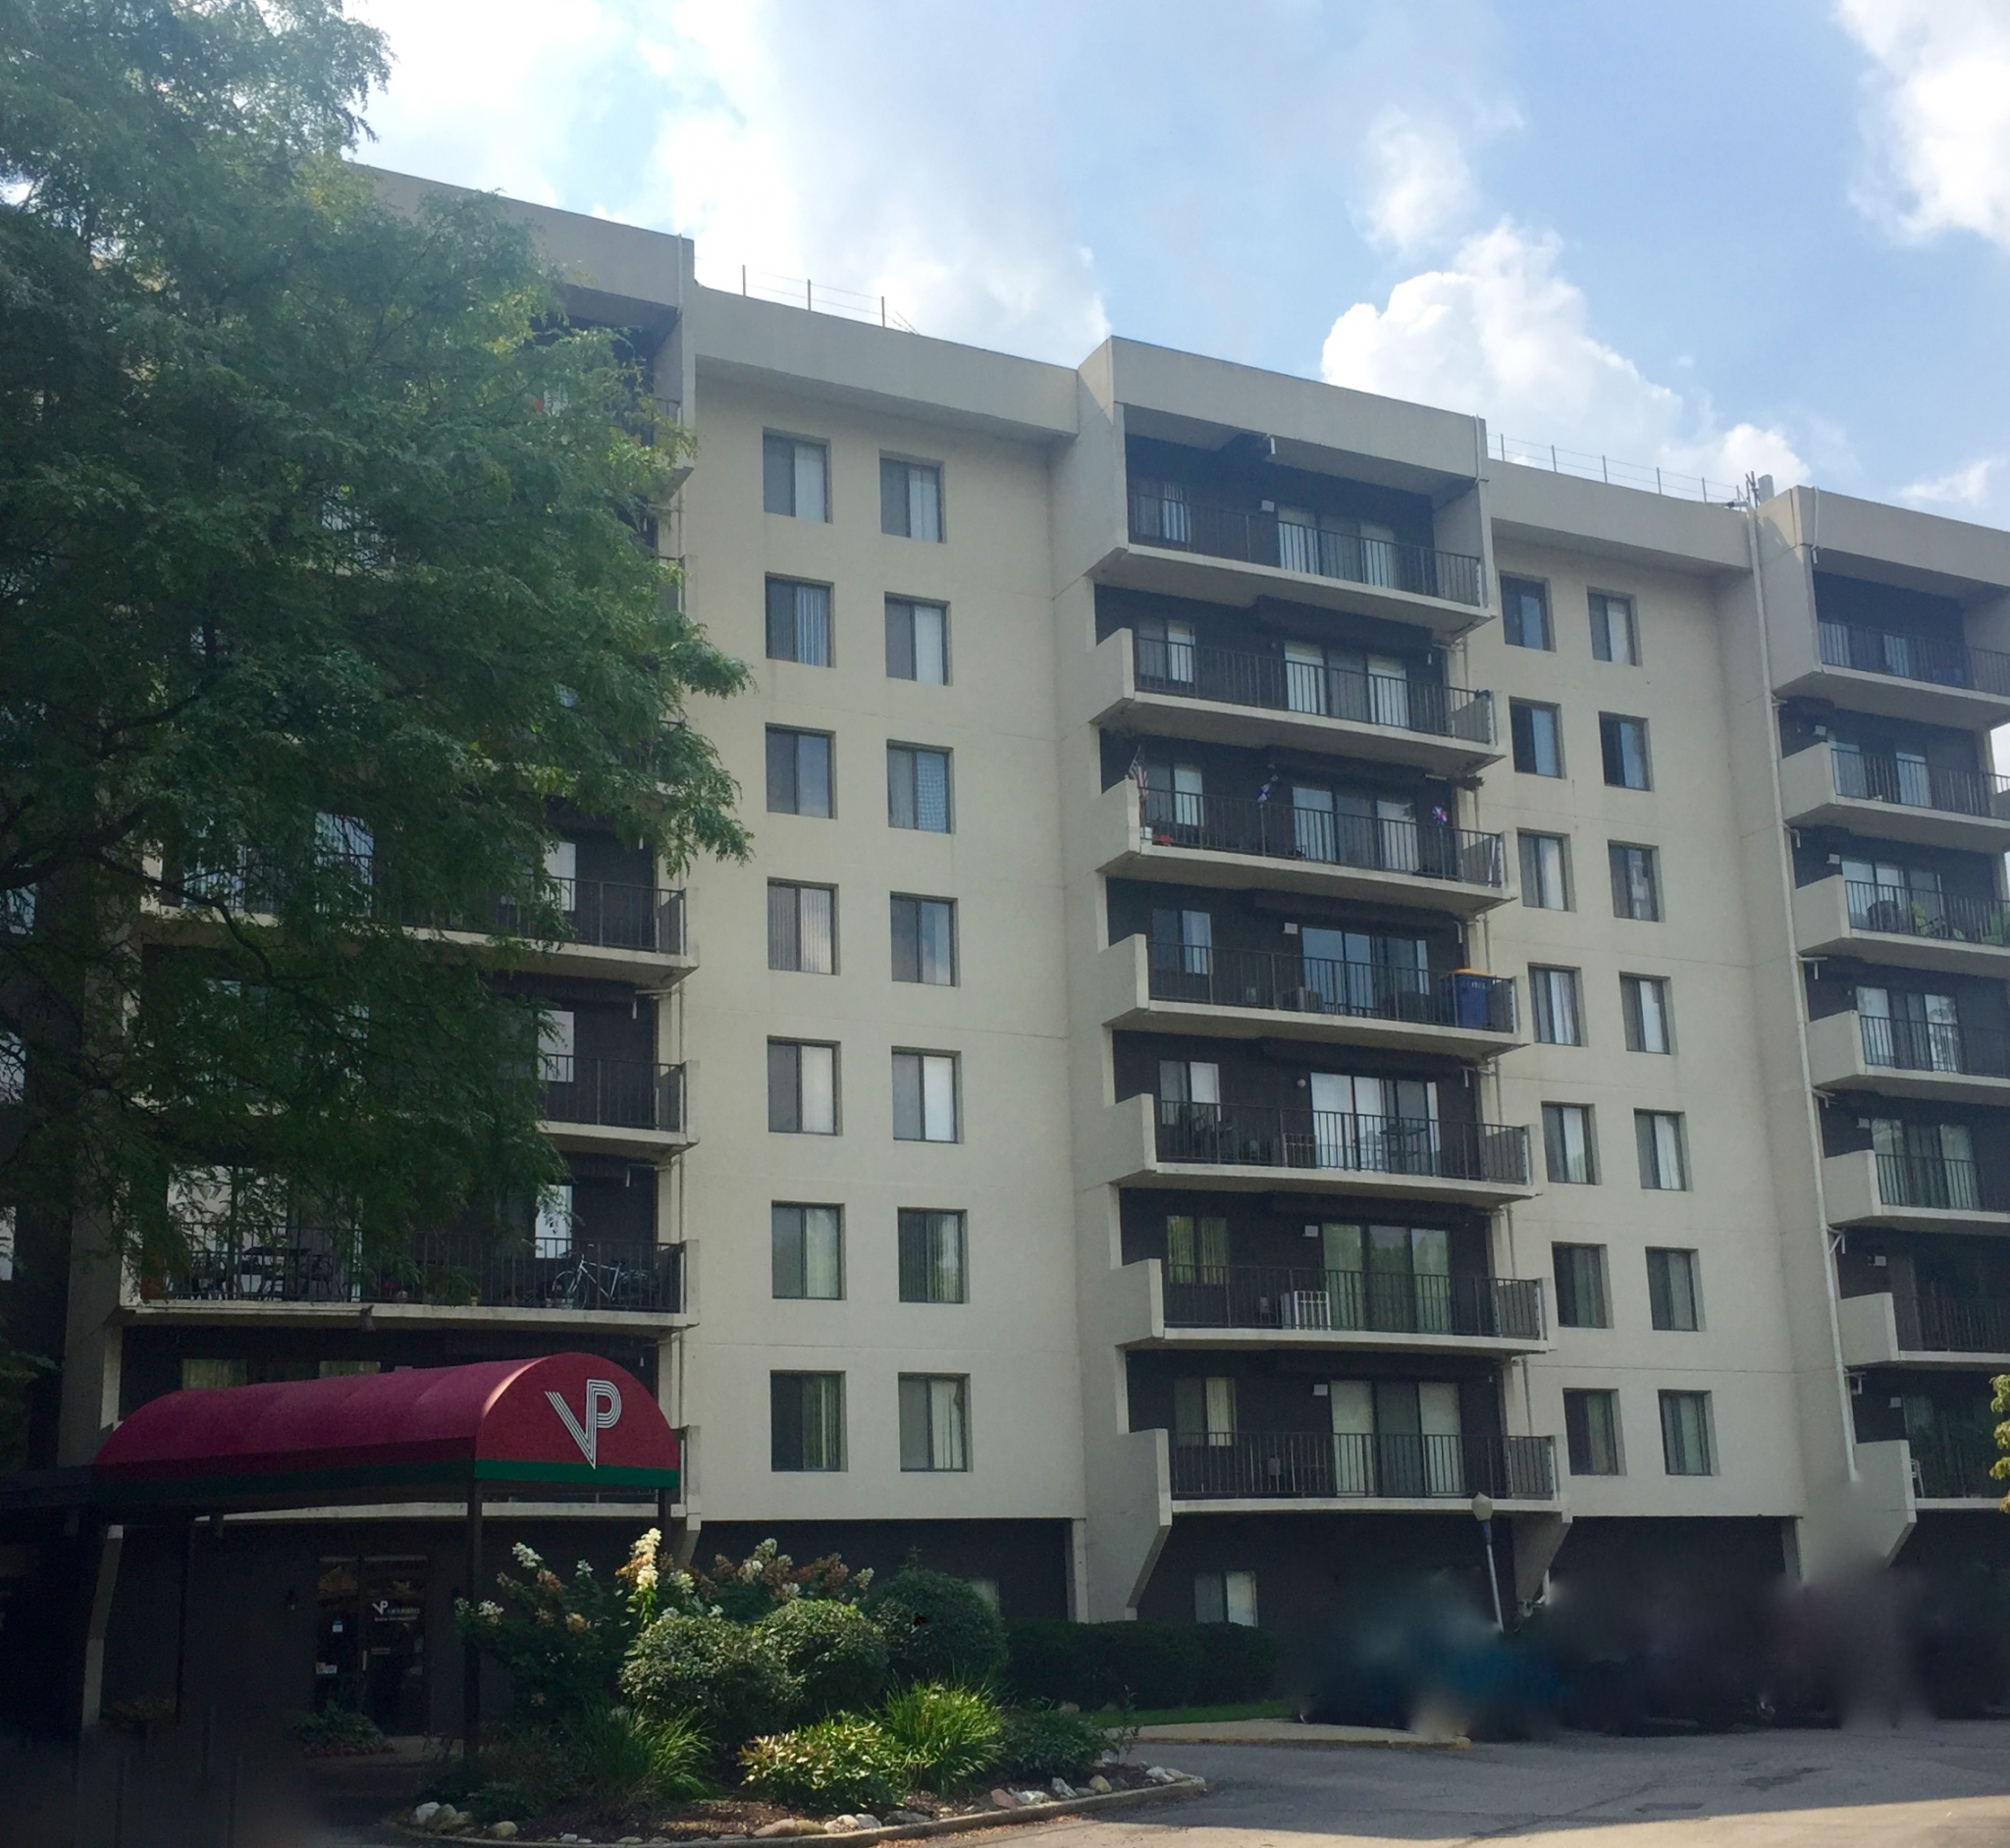 Viewpointe Apartments, Grand Rapids